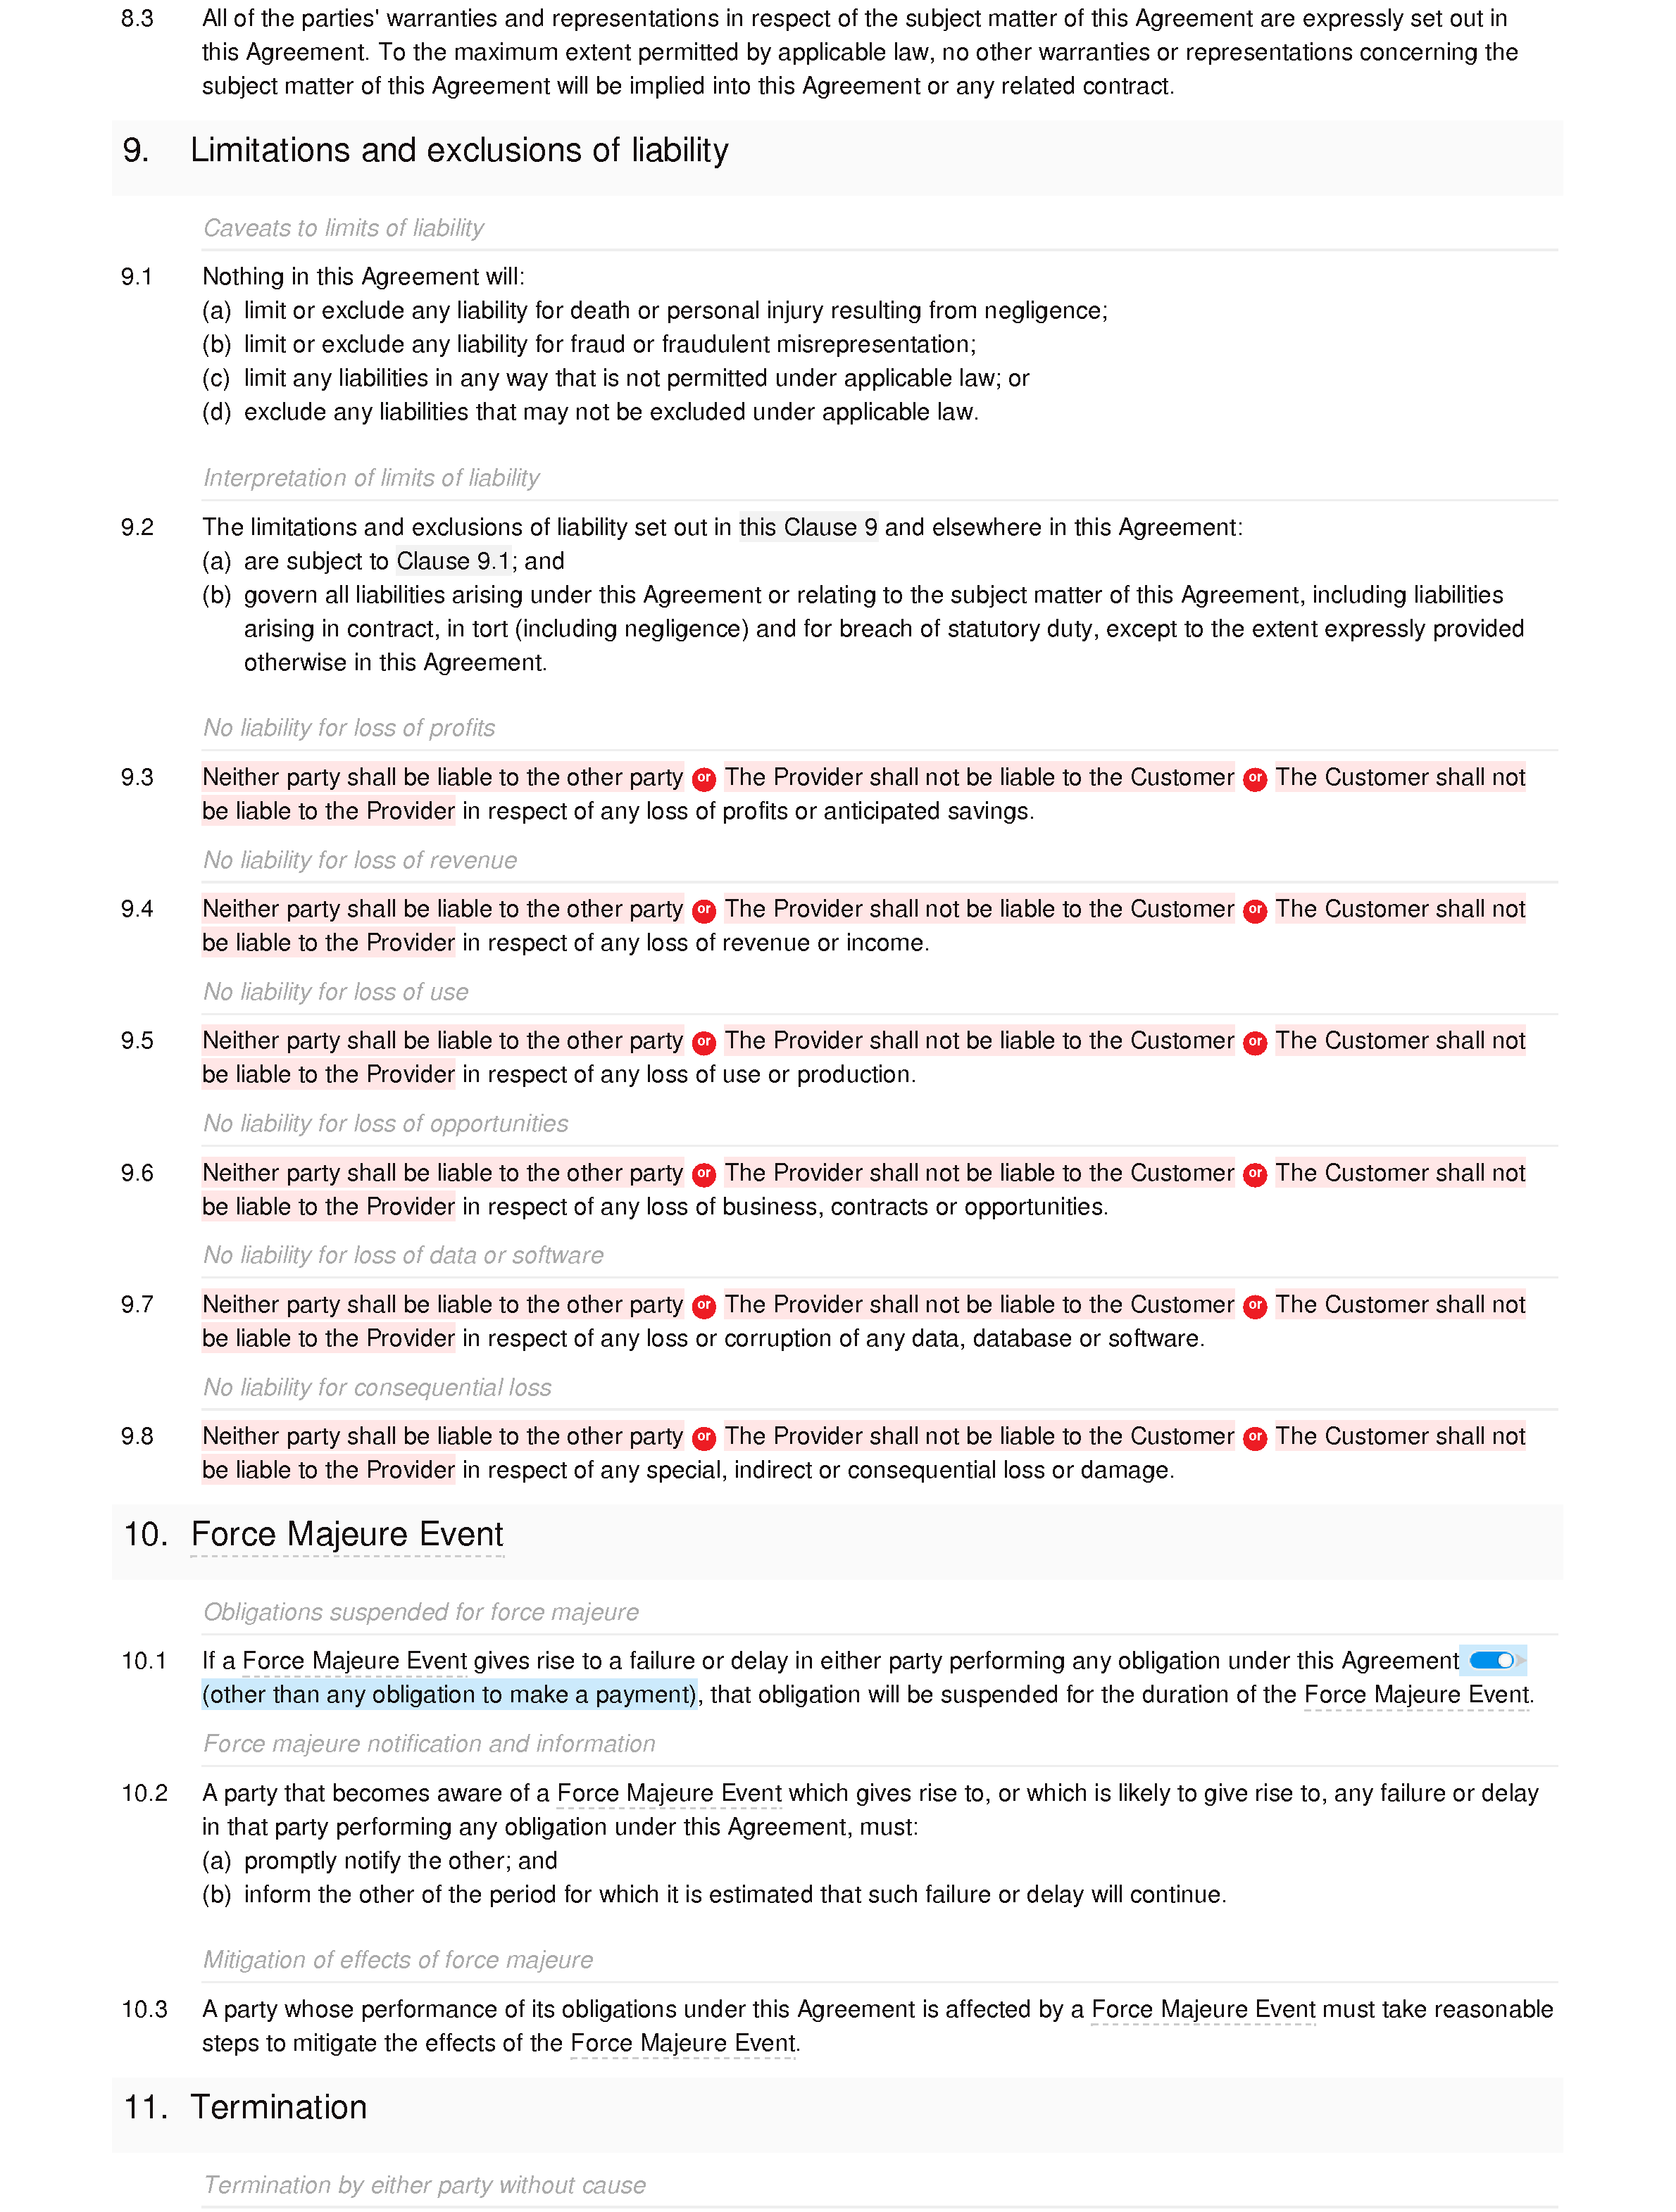 Free software maintenance agreement document editor preview